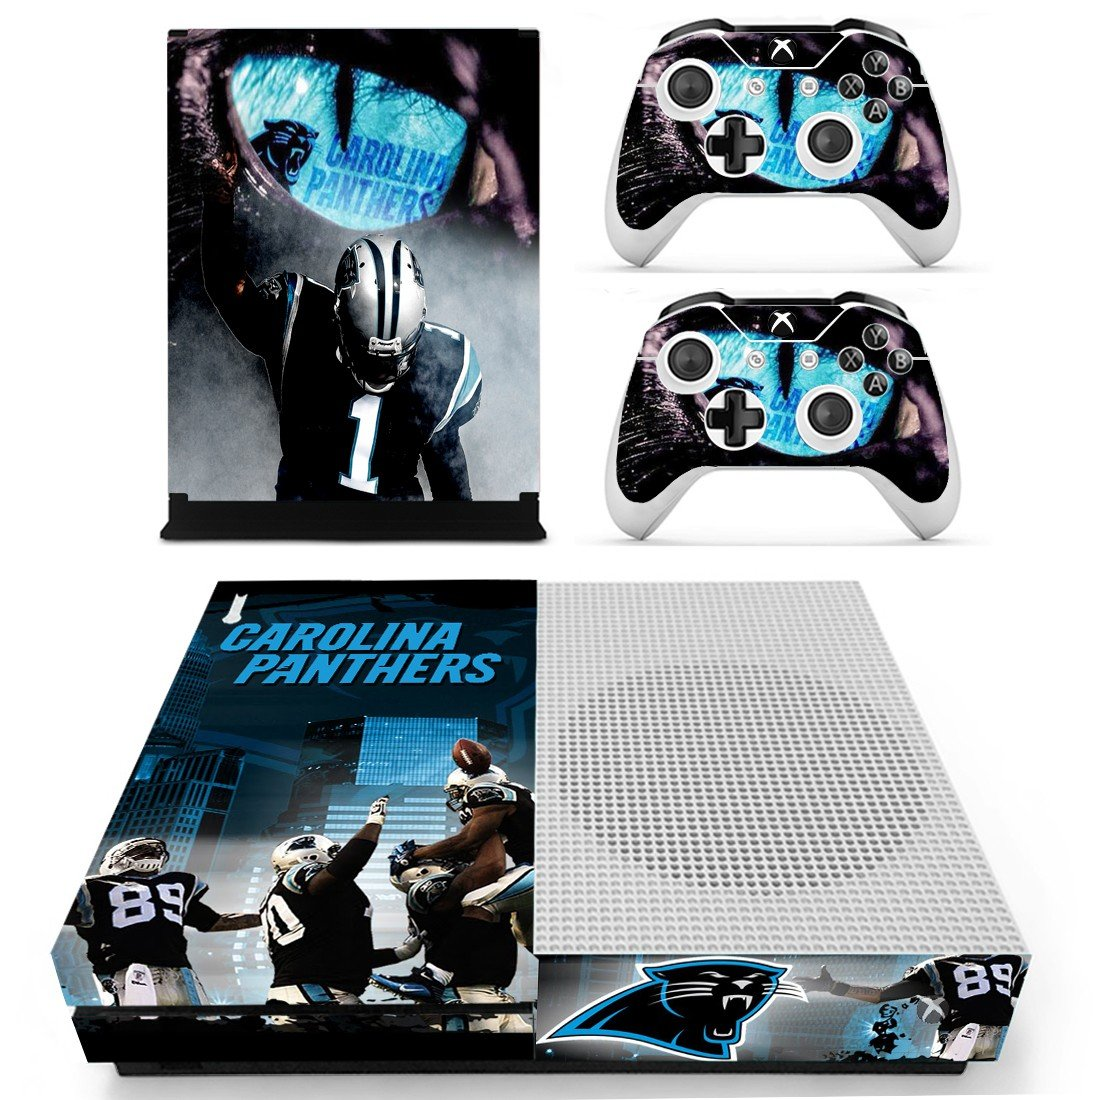 Carolina Panthers decal skin sticker for Xbox One S console and controllers